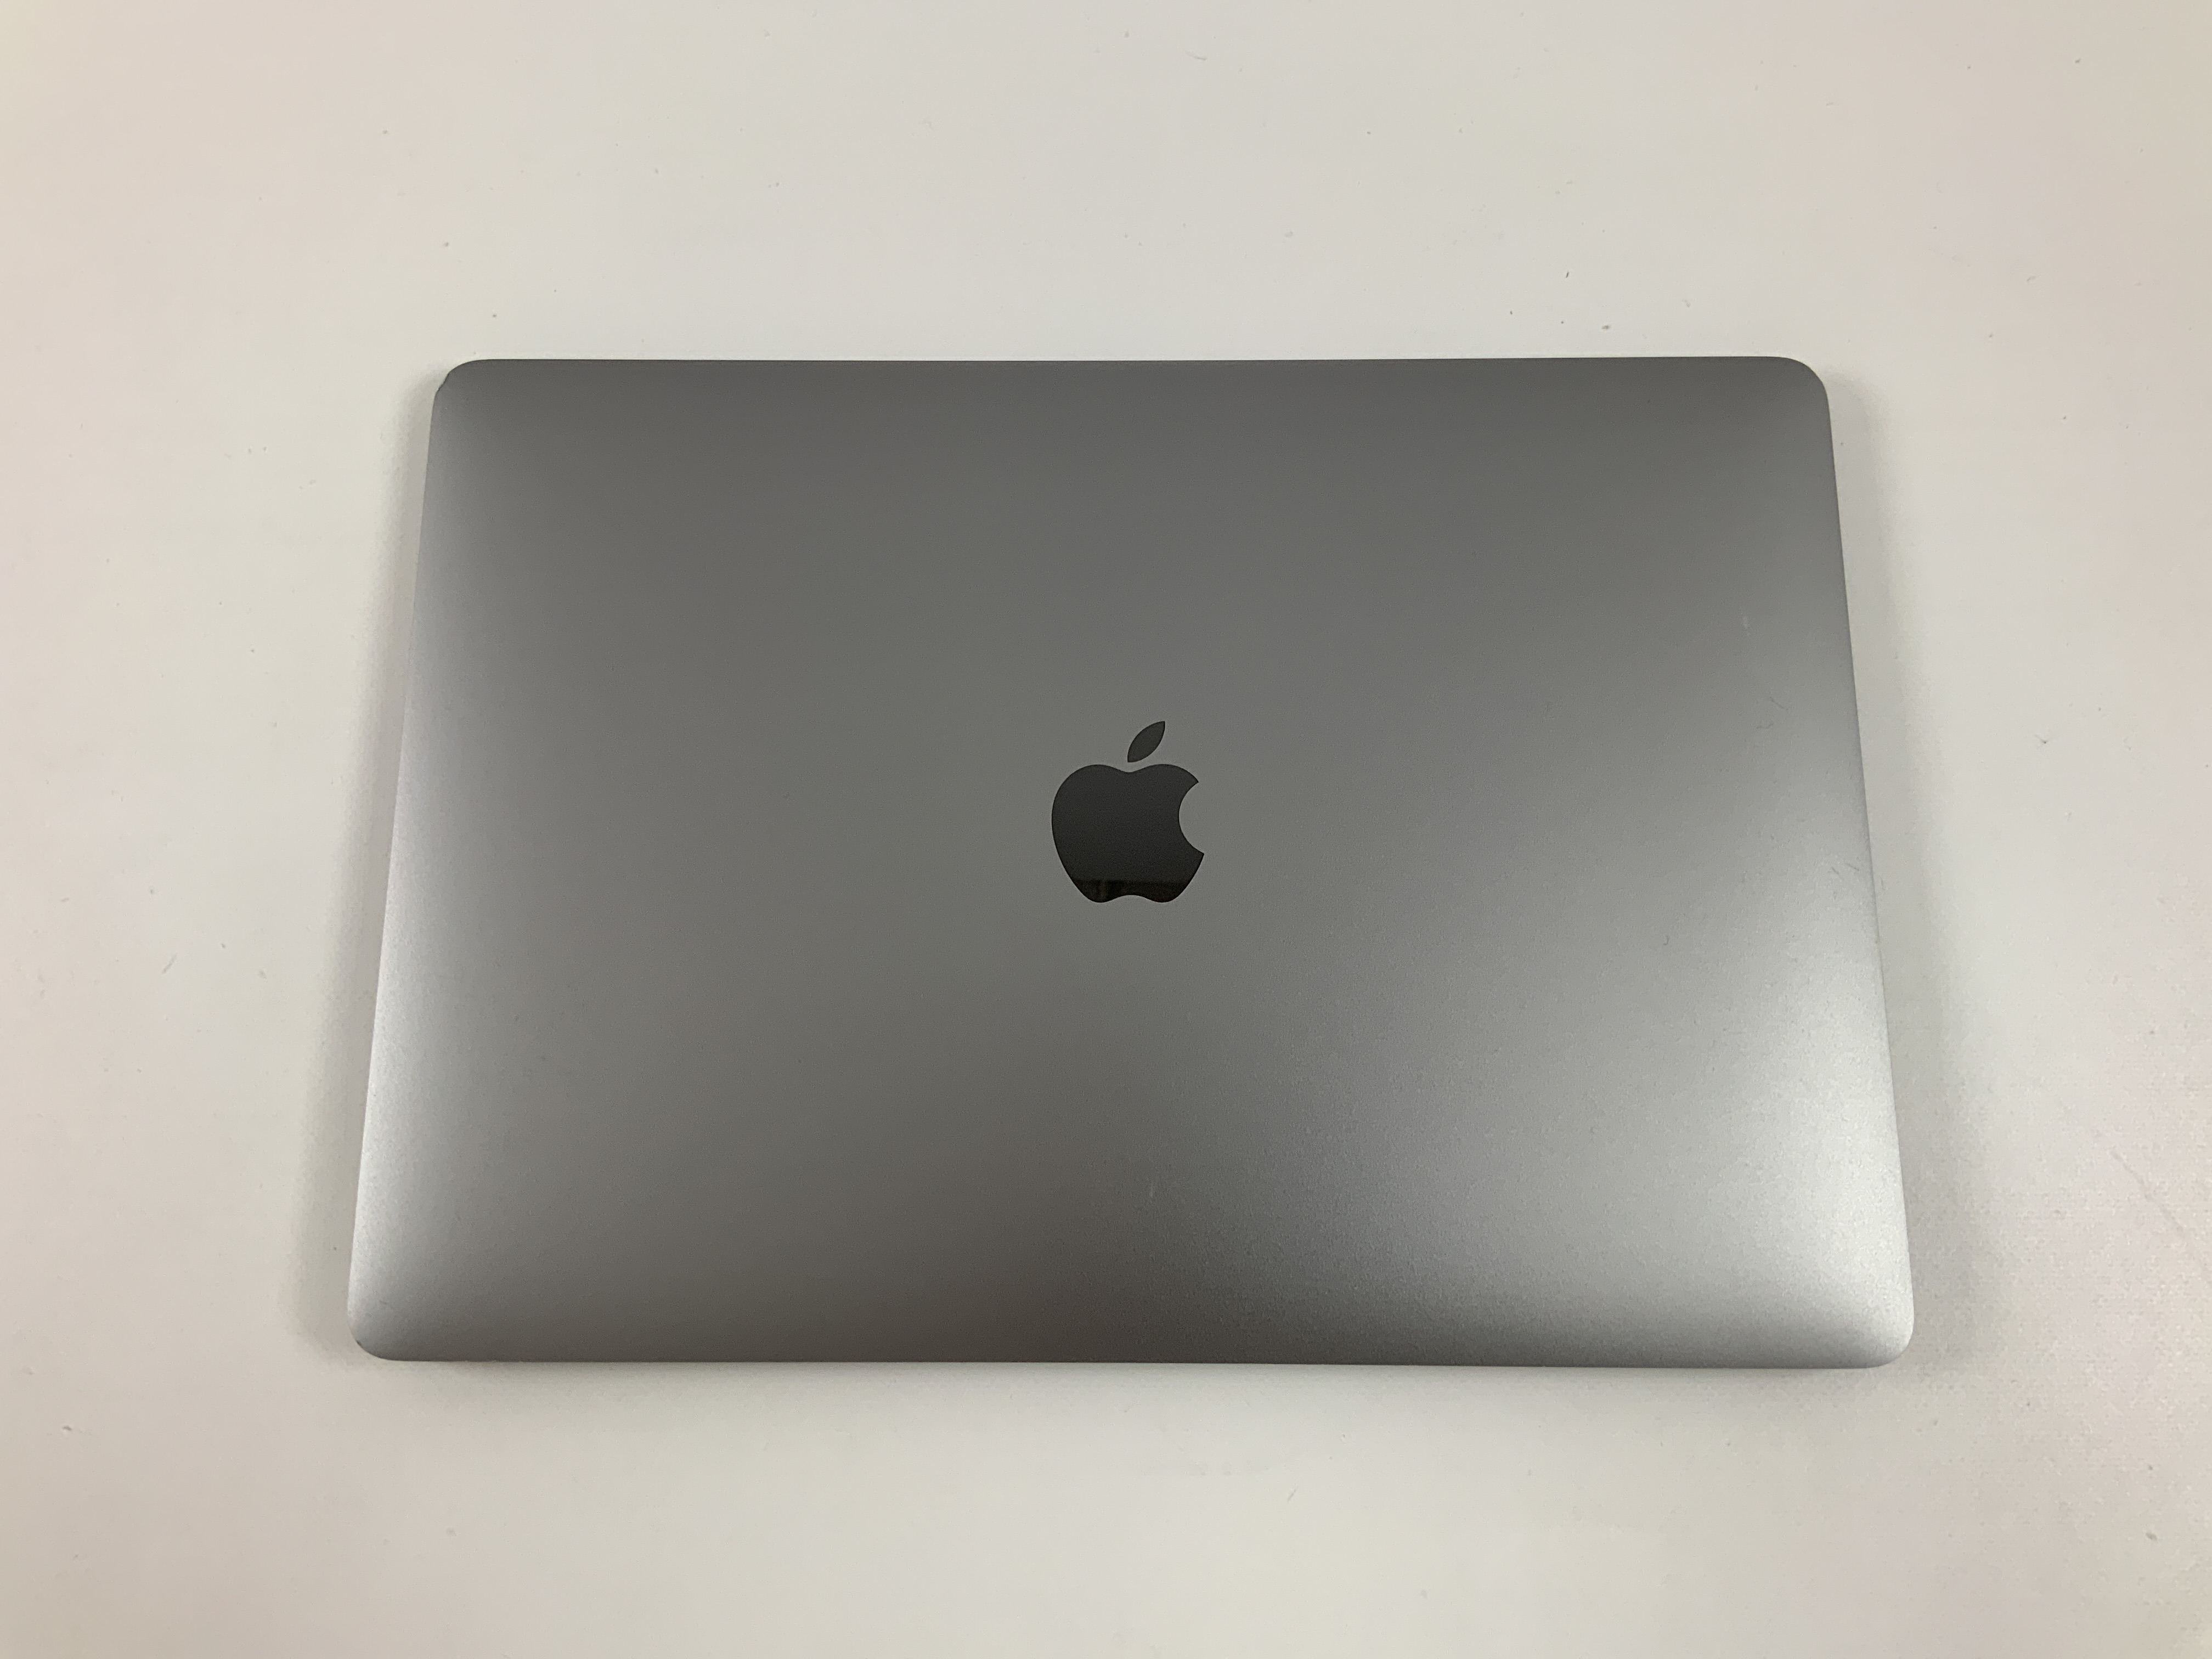 "MacBook Air 13"" Late 2018 (Intel Core i5 1.6 GHz 8 GB RAM 256 GB SSD), Space Gray, Intel Core i5 1.6 GHz, 8 GB RAM, 256 GB SSD, bild 2"